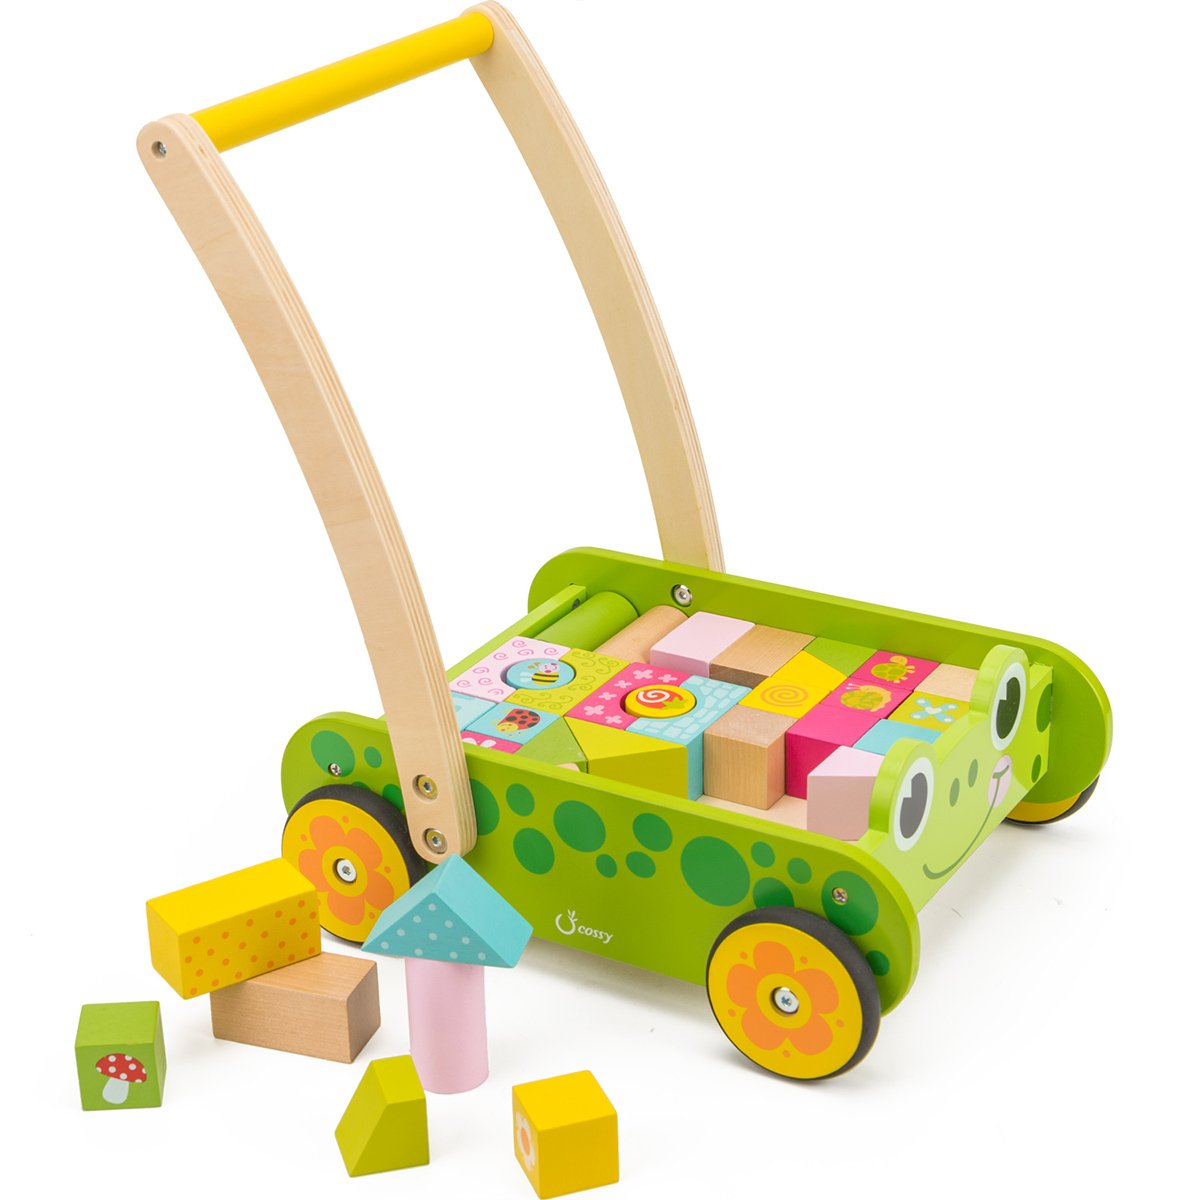 cossy Wooden Baby Learning Walker Toddler Toys for 1 Year Old, Frog Blocks and Roll Cart Push and Pull Toy (34 pcs)